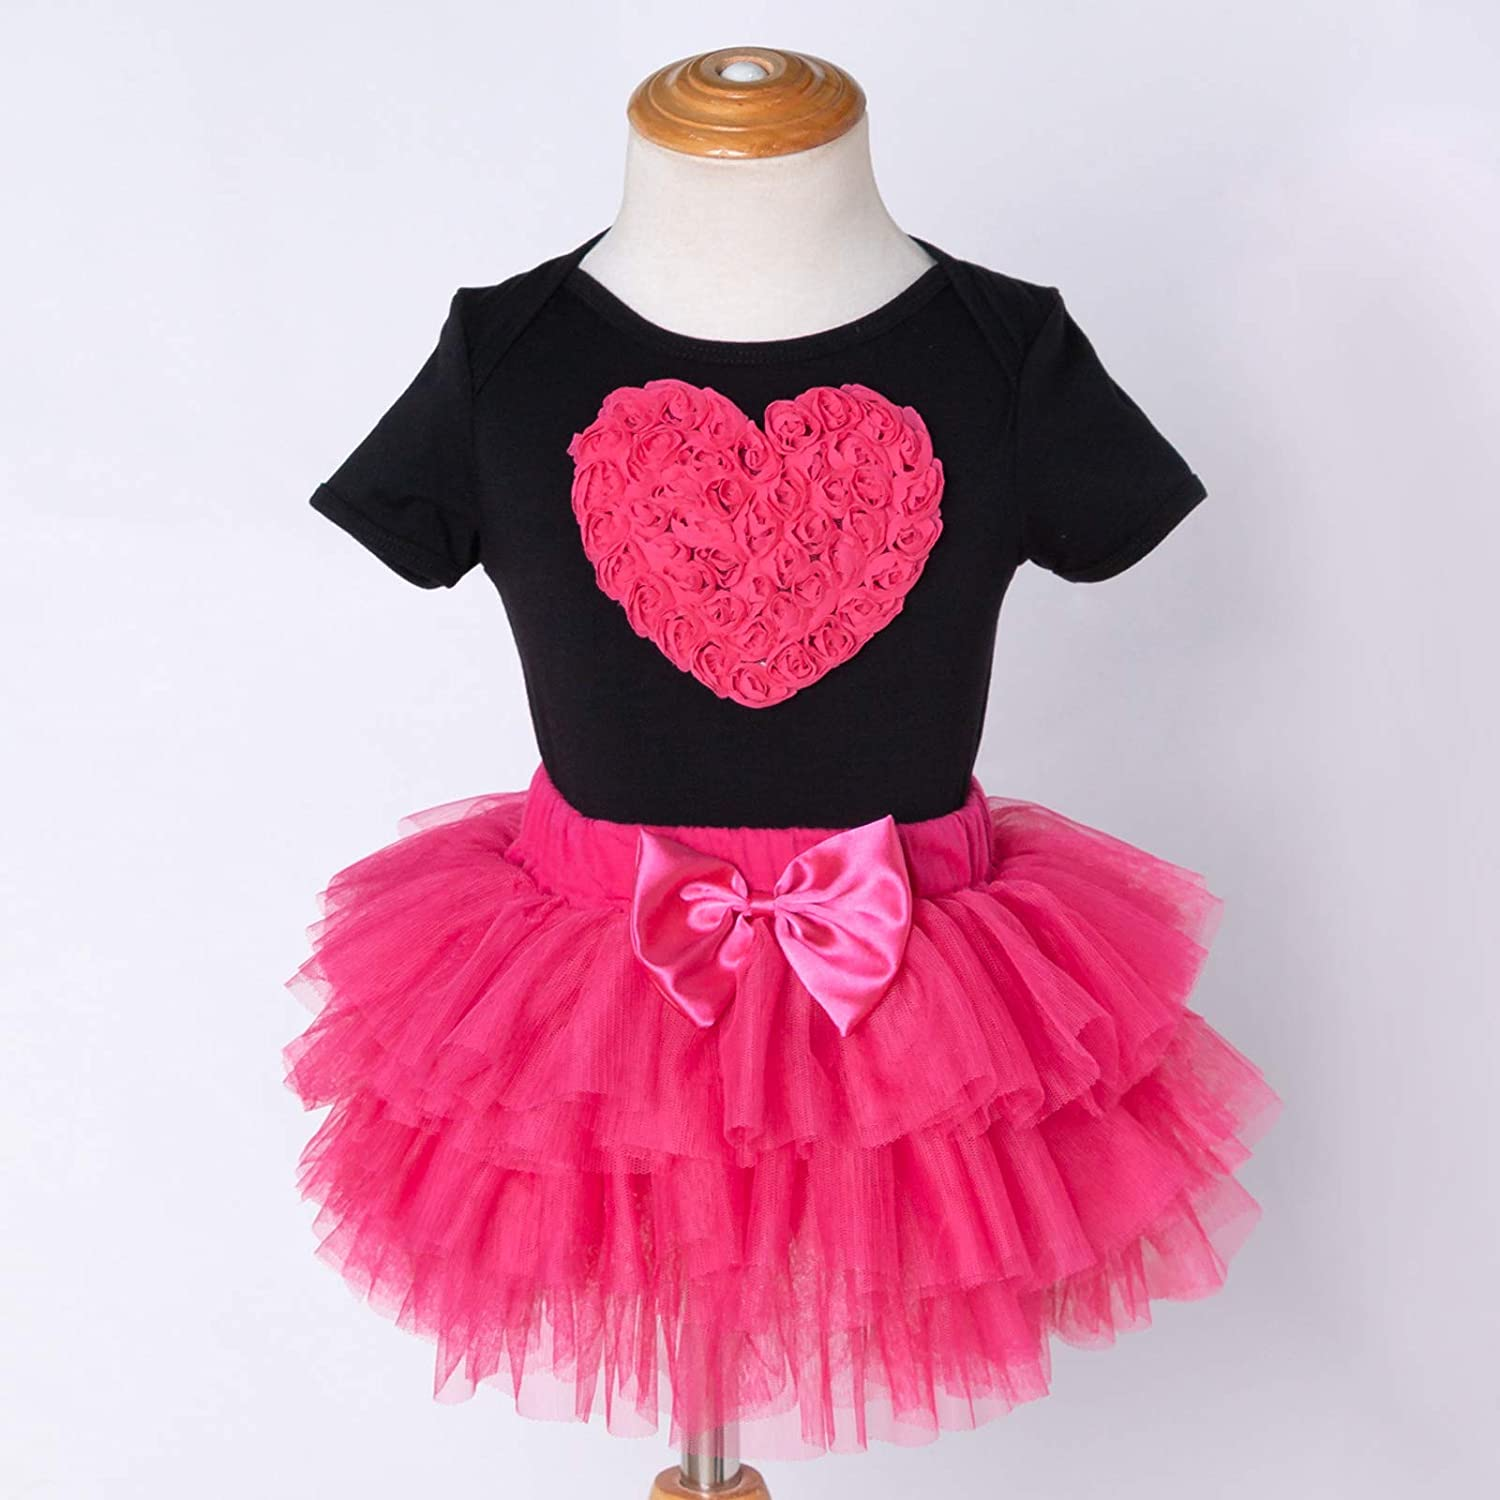 My First Valentines Day Newborn Infant Baby Girl Outfits Romper Top Tutu Tulle Skirt Princess Clothes Set